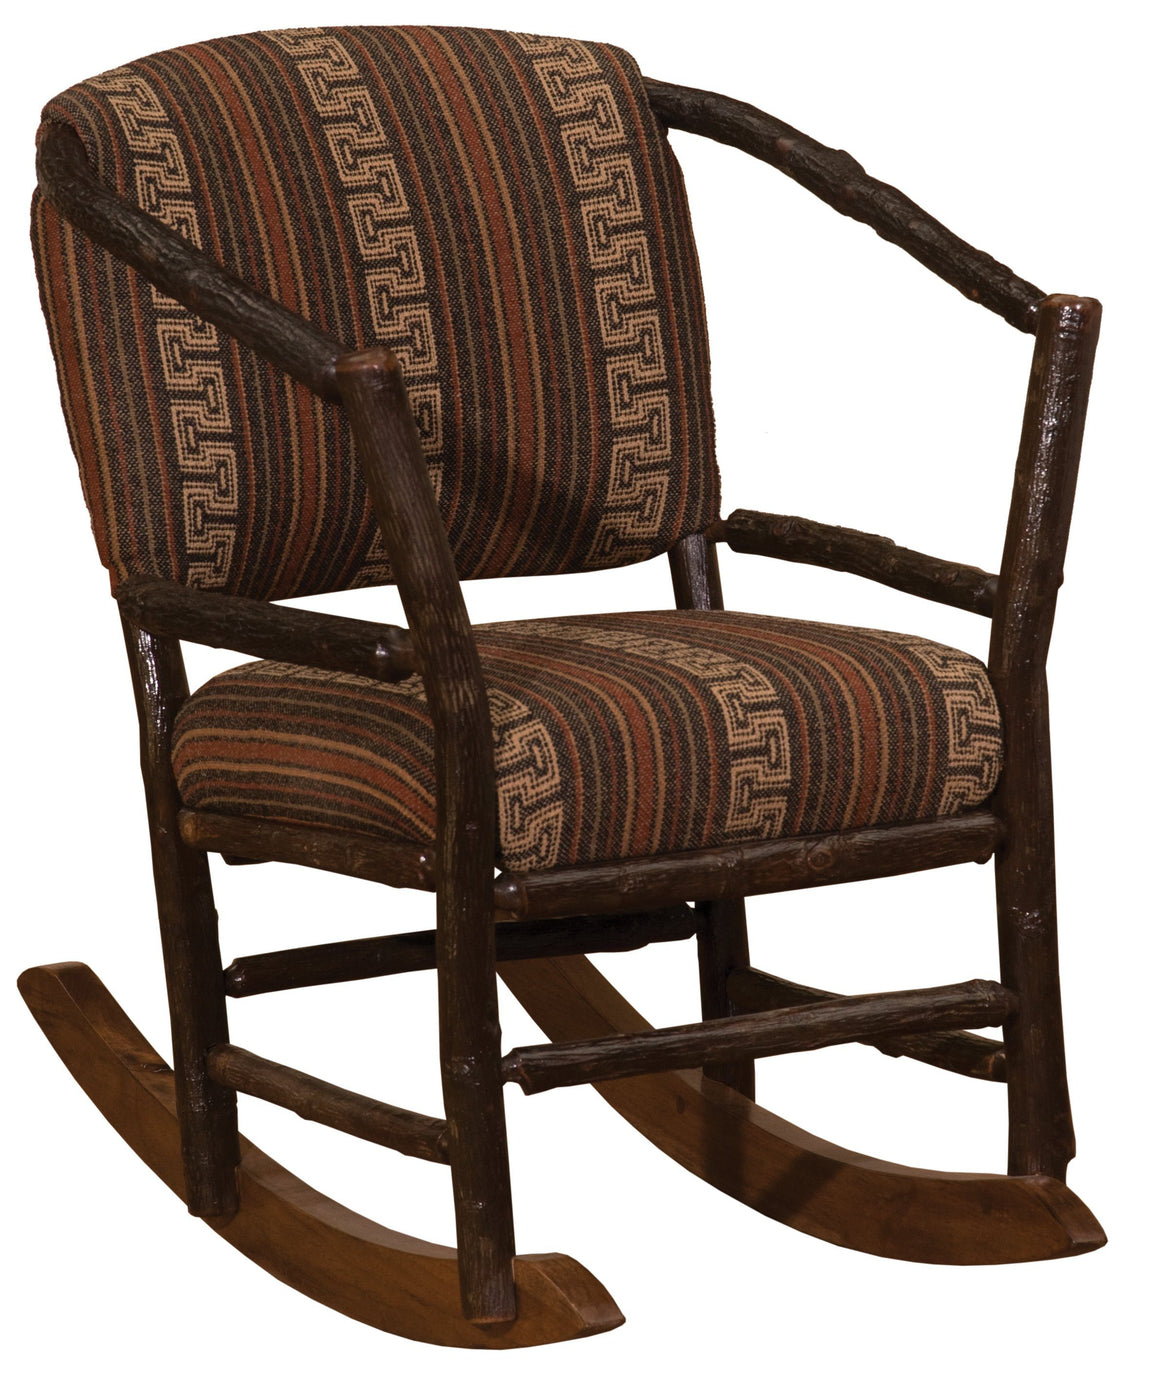 Natural Hickory Log Hoop Rocking Chair with Upholstered Seat & Back - Rustic Deco Incorporated